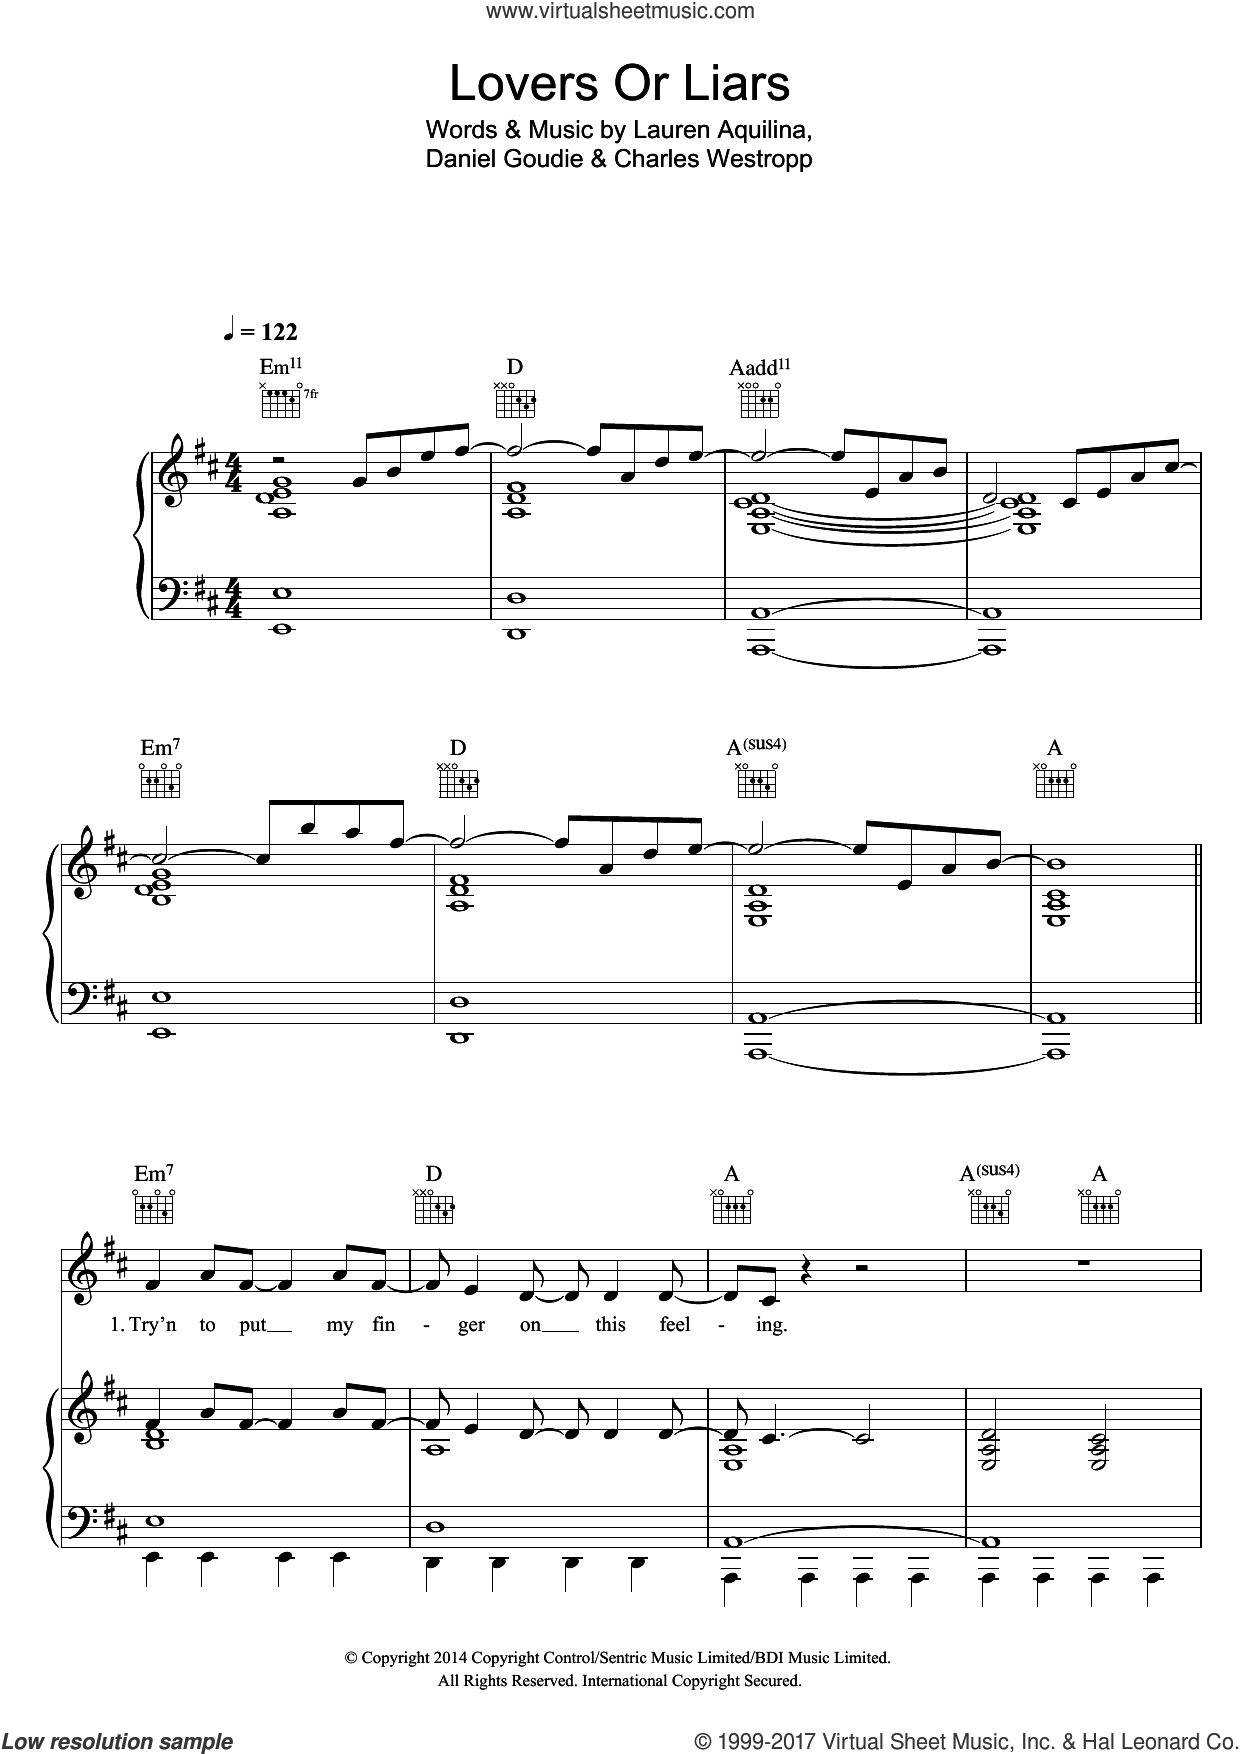 Lovers Or Liars sheet music for voice, piano or guitar by Lauren Aquilina, Charles Westropp and Daniel Goudie, intermediate skill level